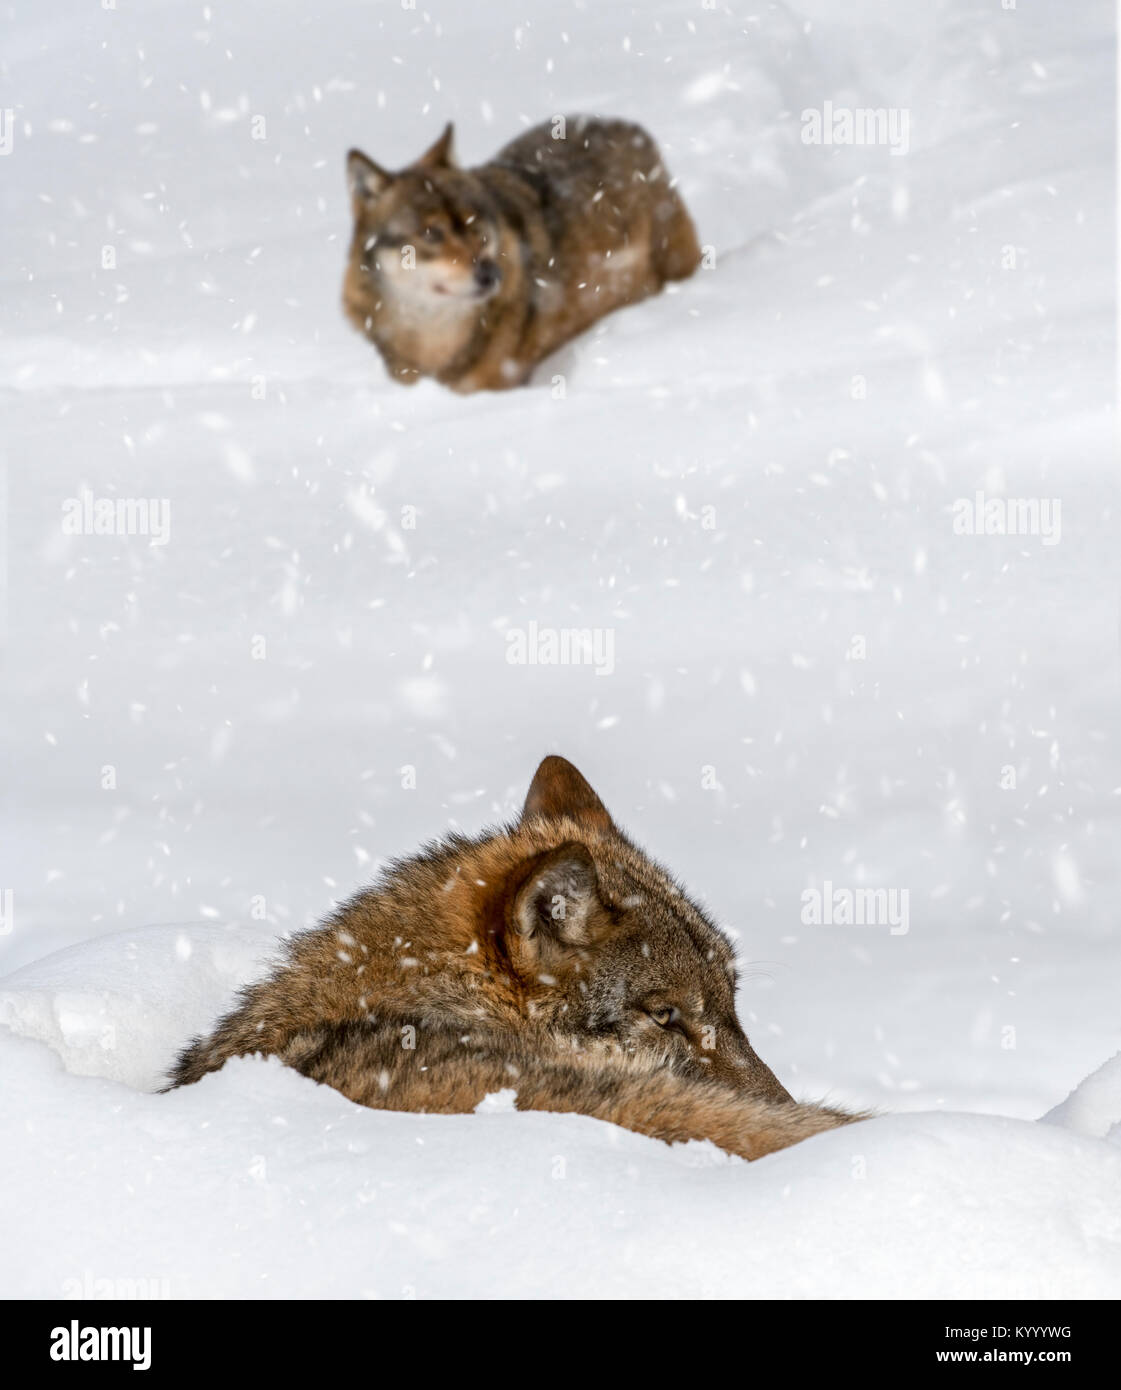 Gray wolf / grey wolf (Canis lupus) resting curled up in the snow in winter while it's snowing - Stock Image